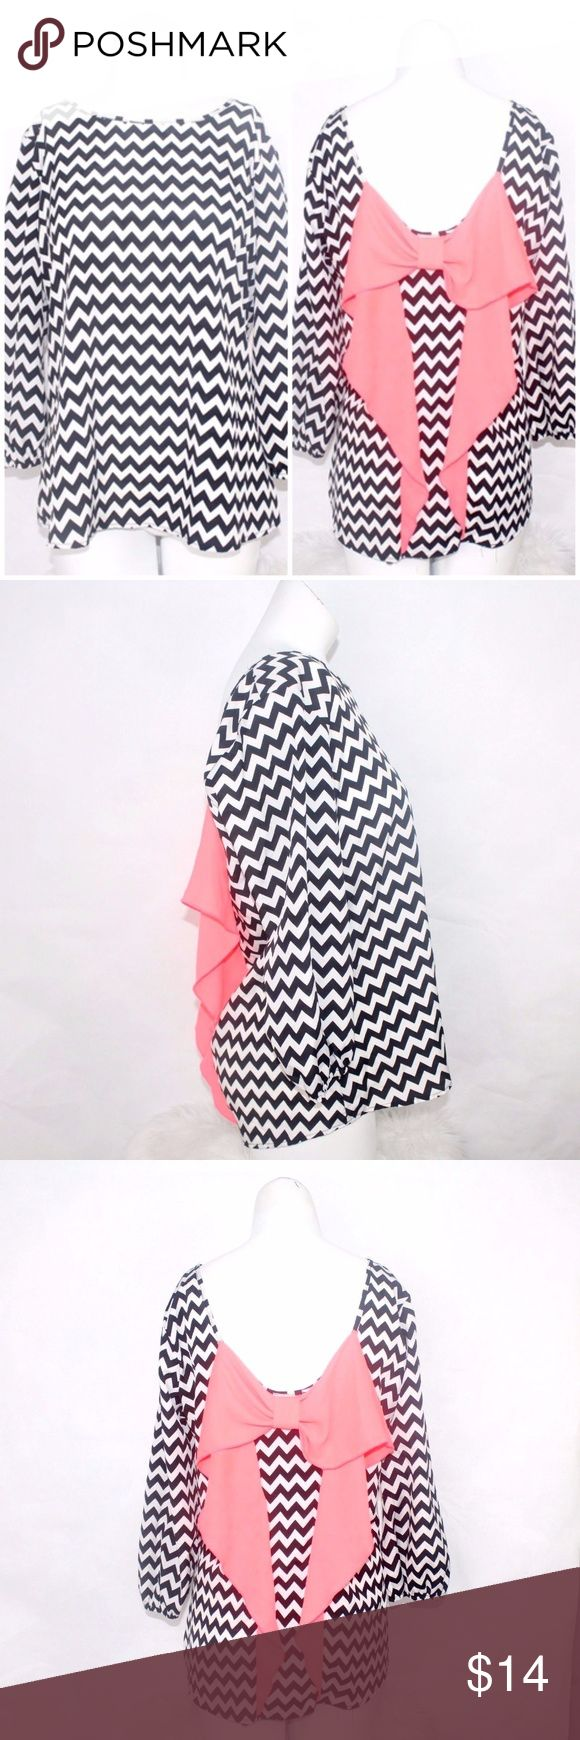 MOA MOA Womens Black White Neon Pink Chevron Blous MOA MOA Womens Black White Neon Pink Chevron Blouse Bow Back Sz M C4 Cute Sexy  100% Polyester Bust 19 Inches Length 24 Inches Moa Moa Tops Blouses